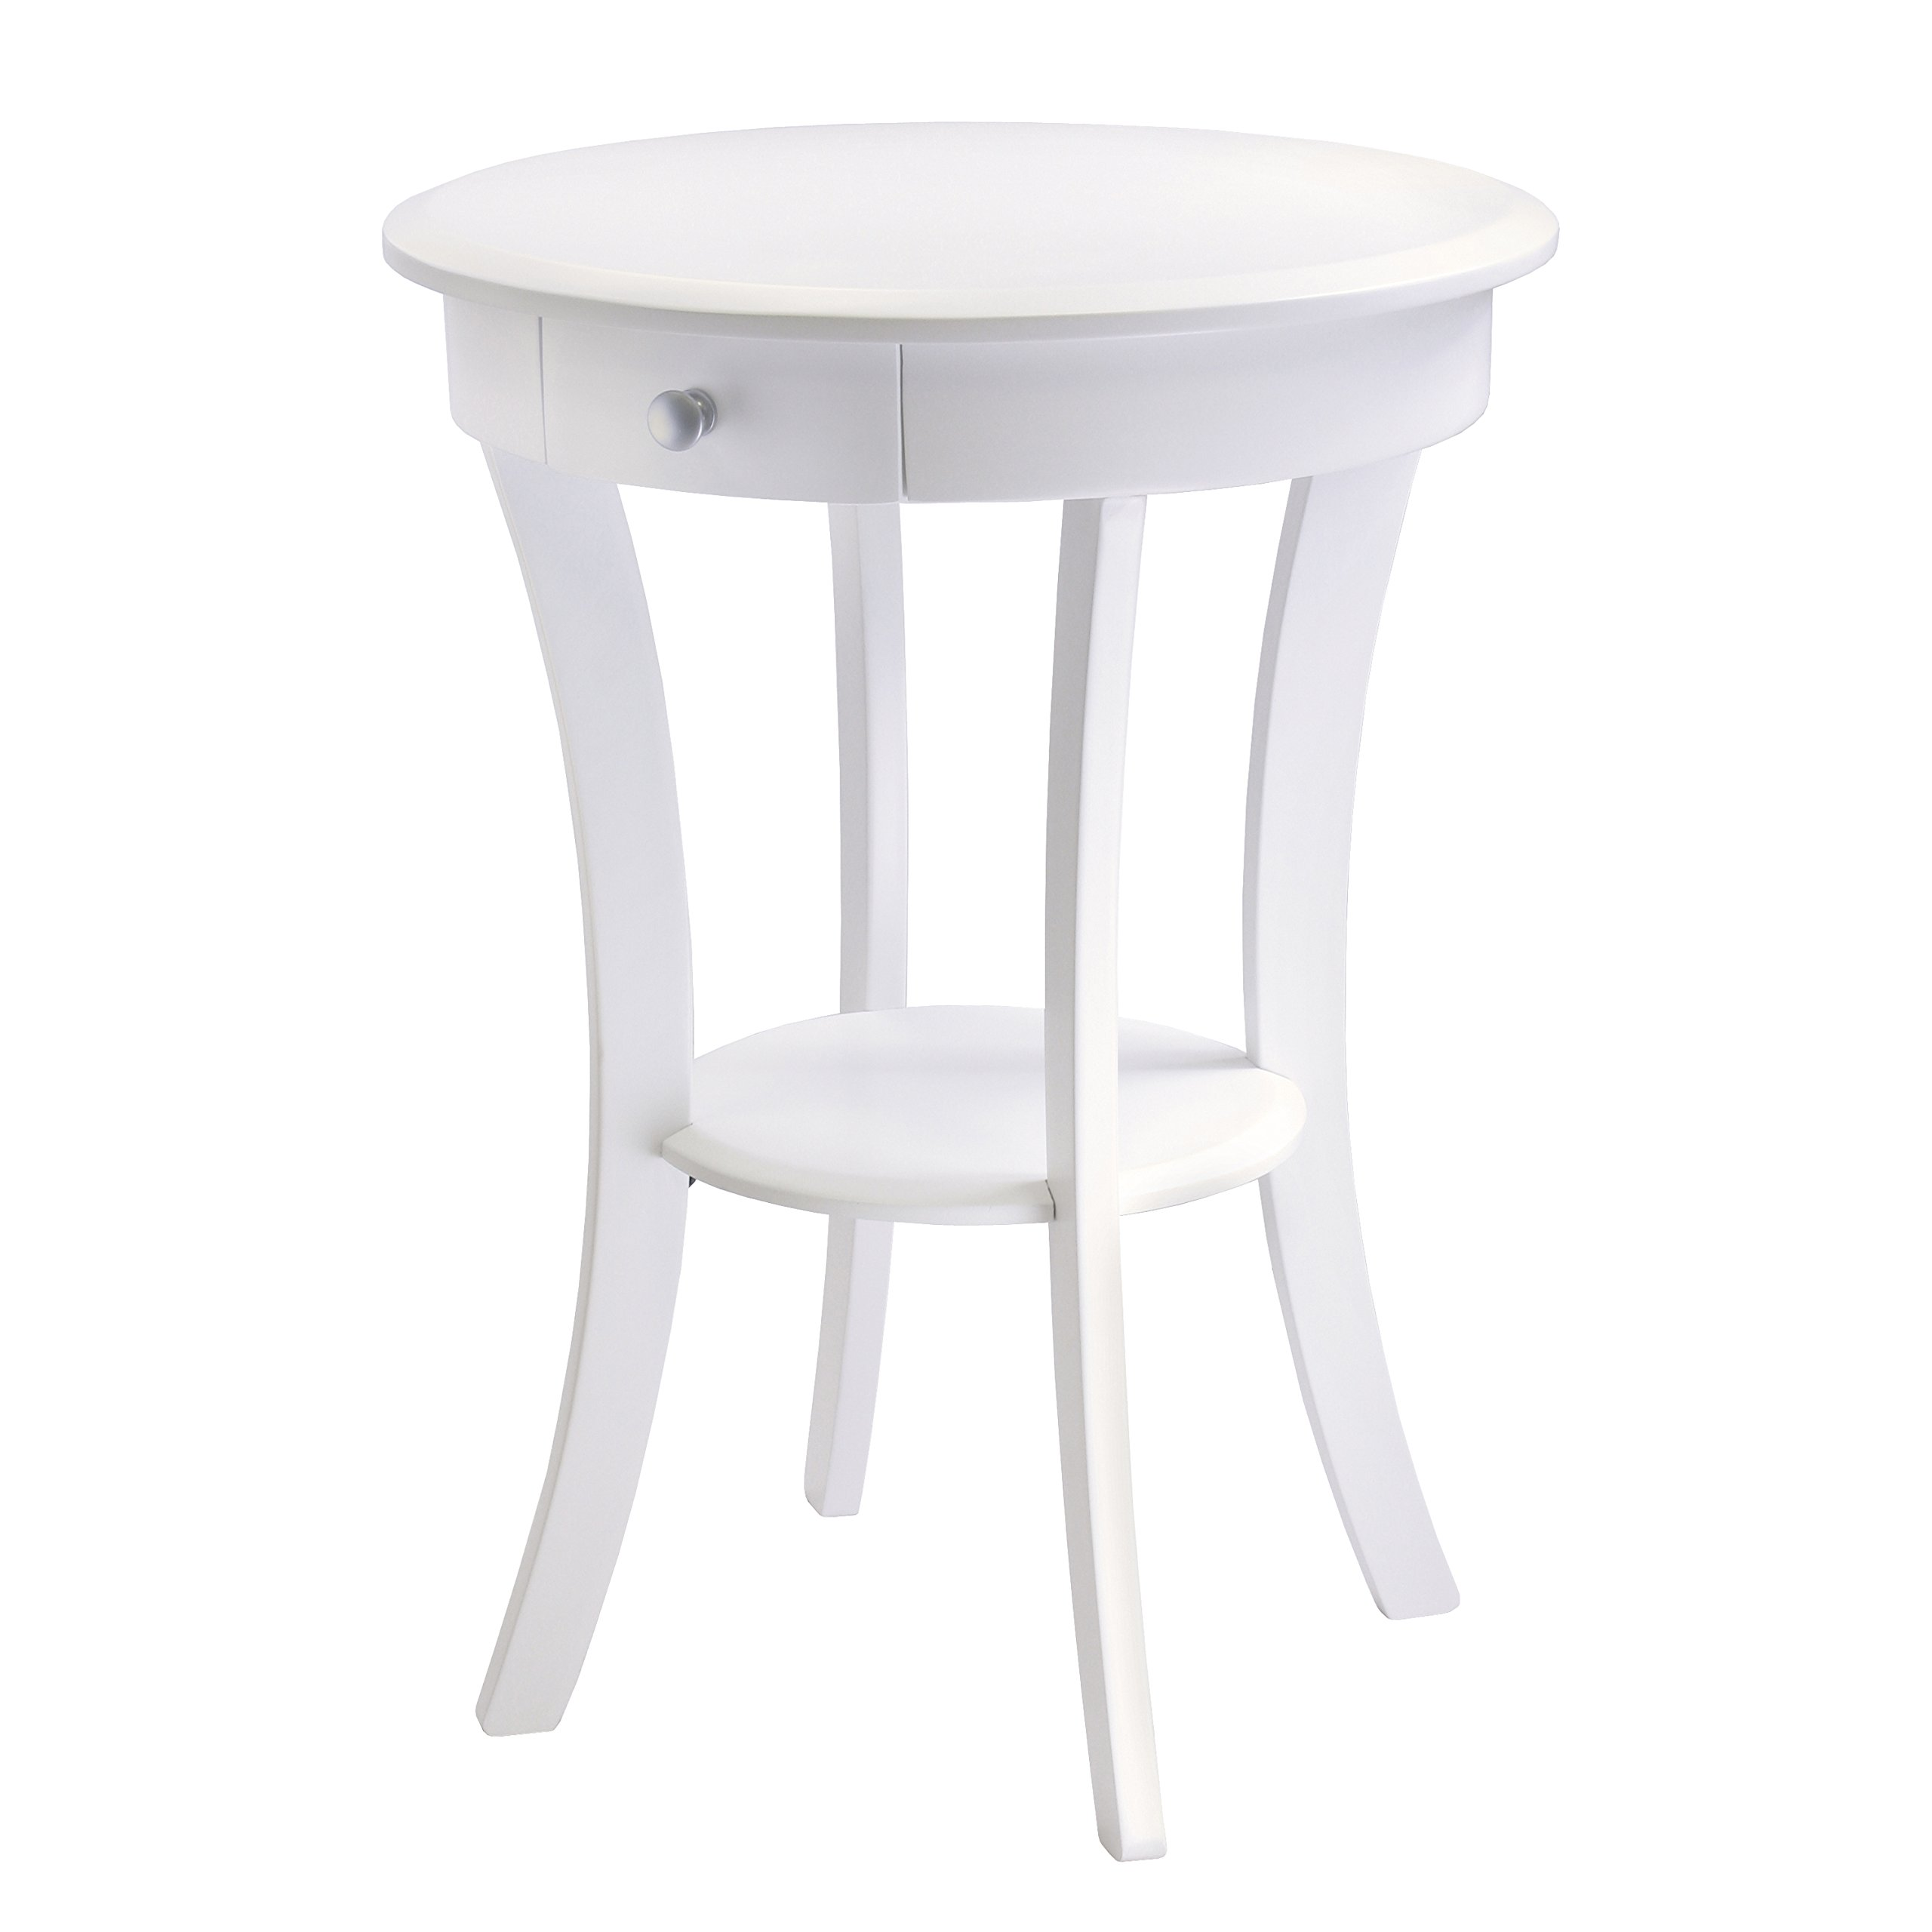 probably fantastic amazing white end table with wood top mira winsome sasha accent drawer curved legs finish bedroom stools argos modern dining furniture half round console